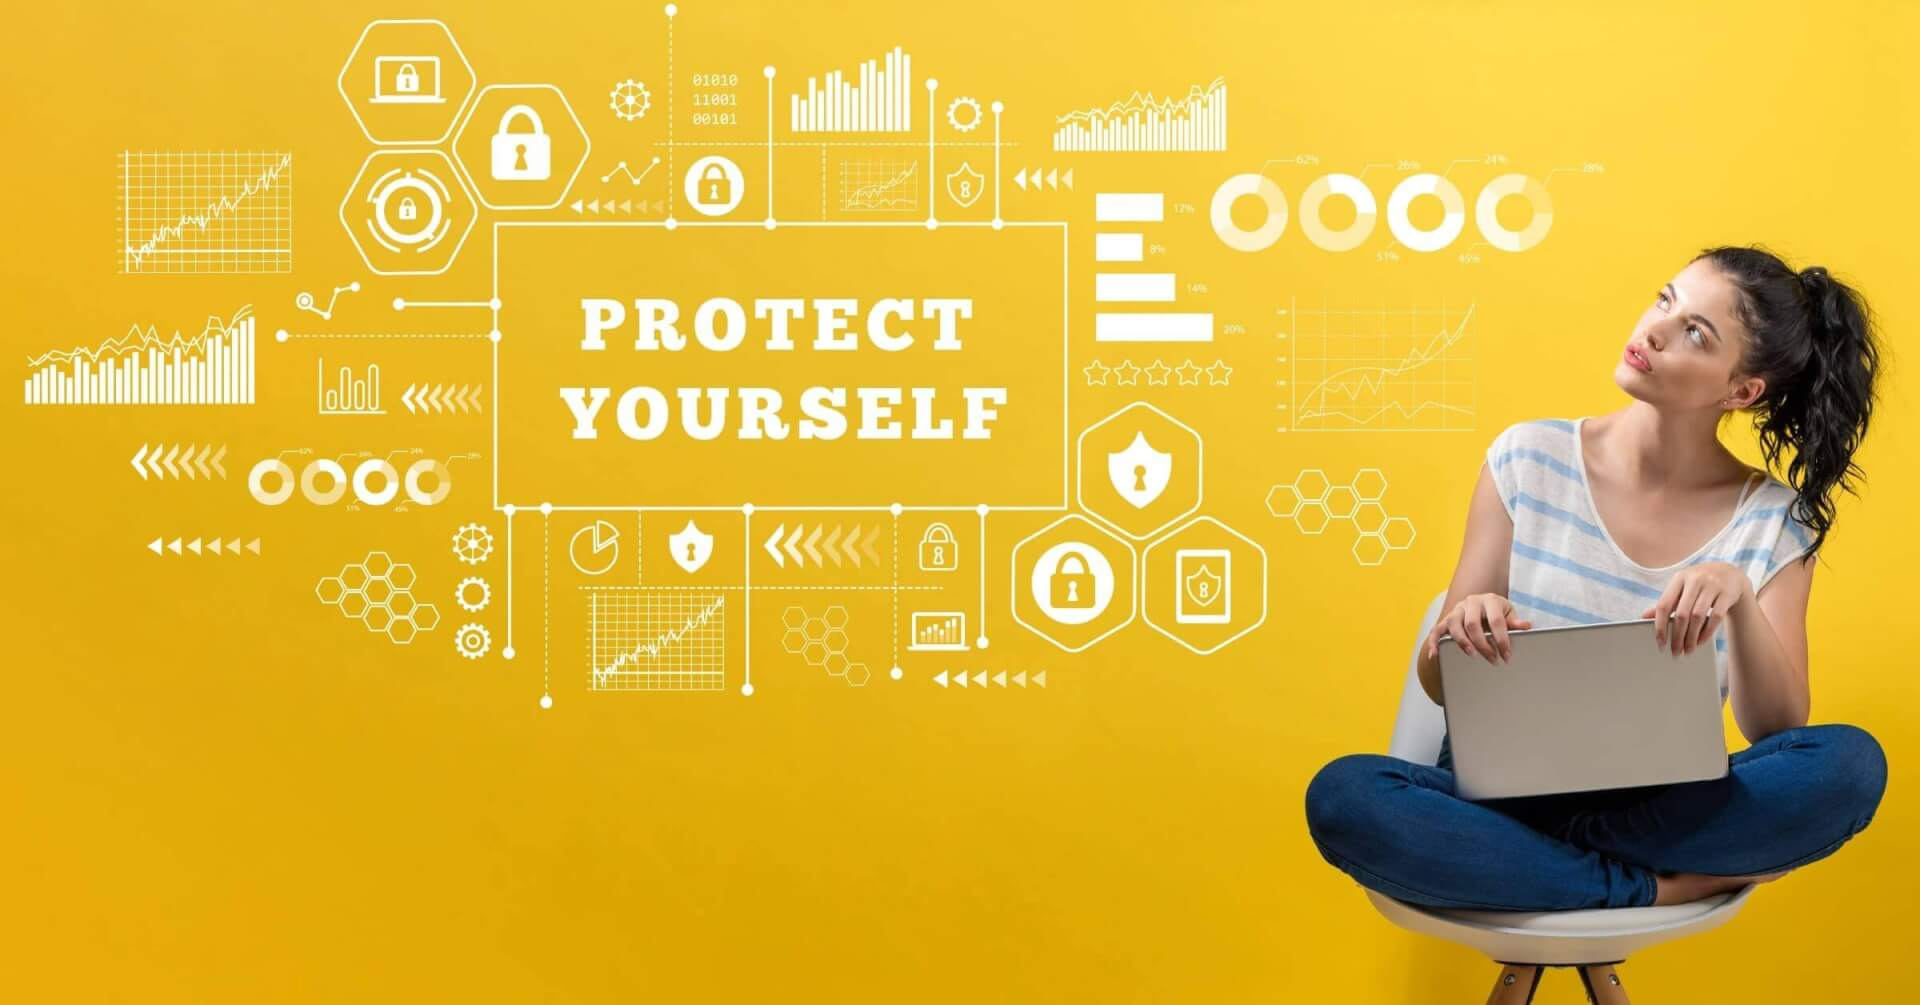 Personal Social - Protect Yourself